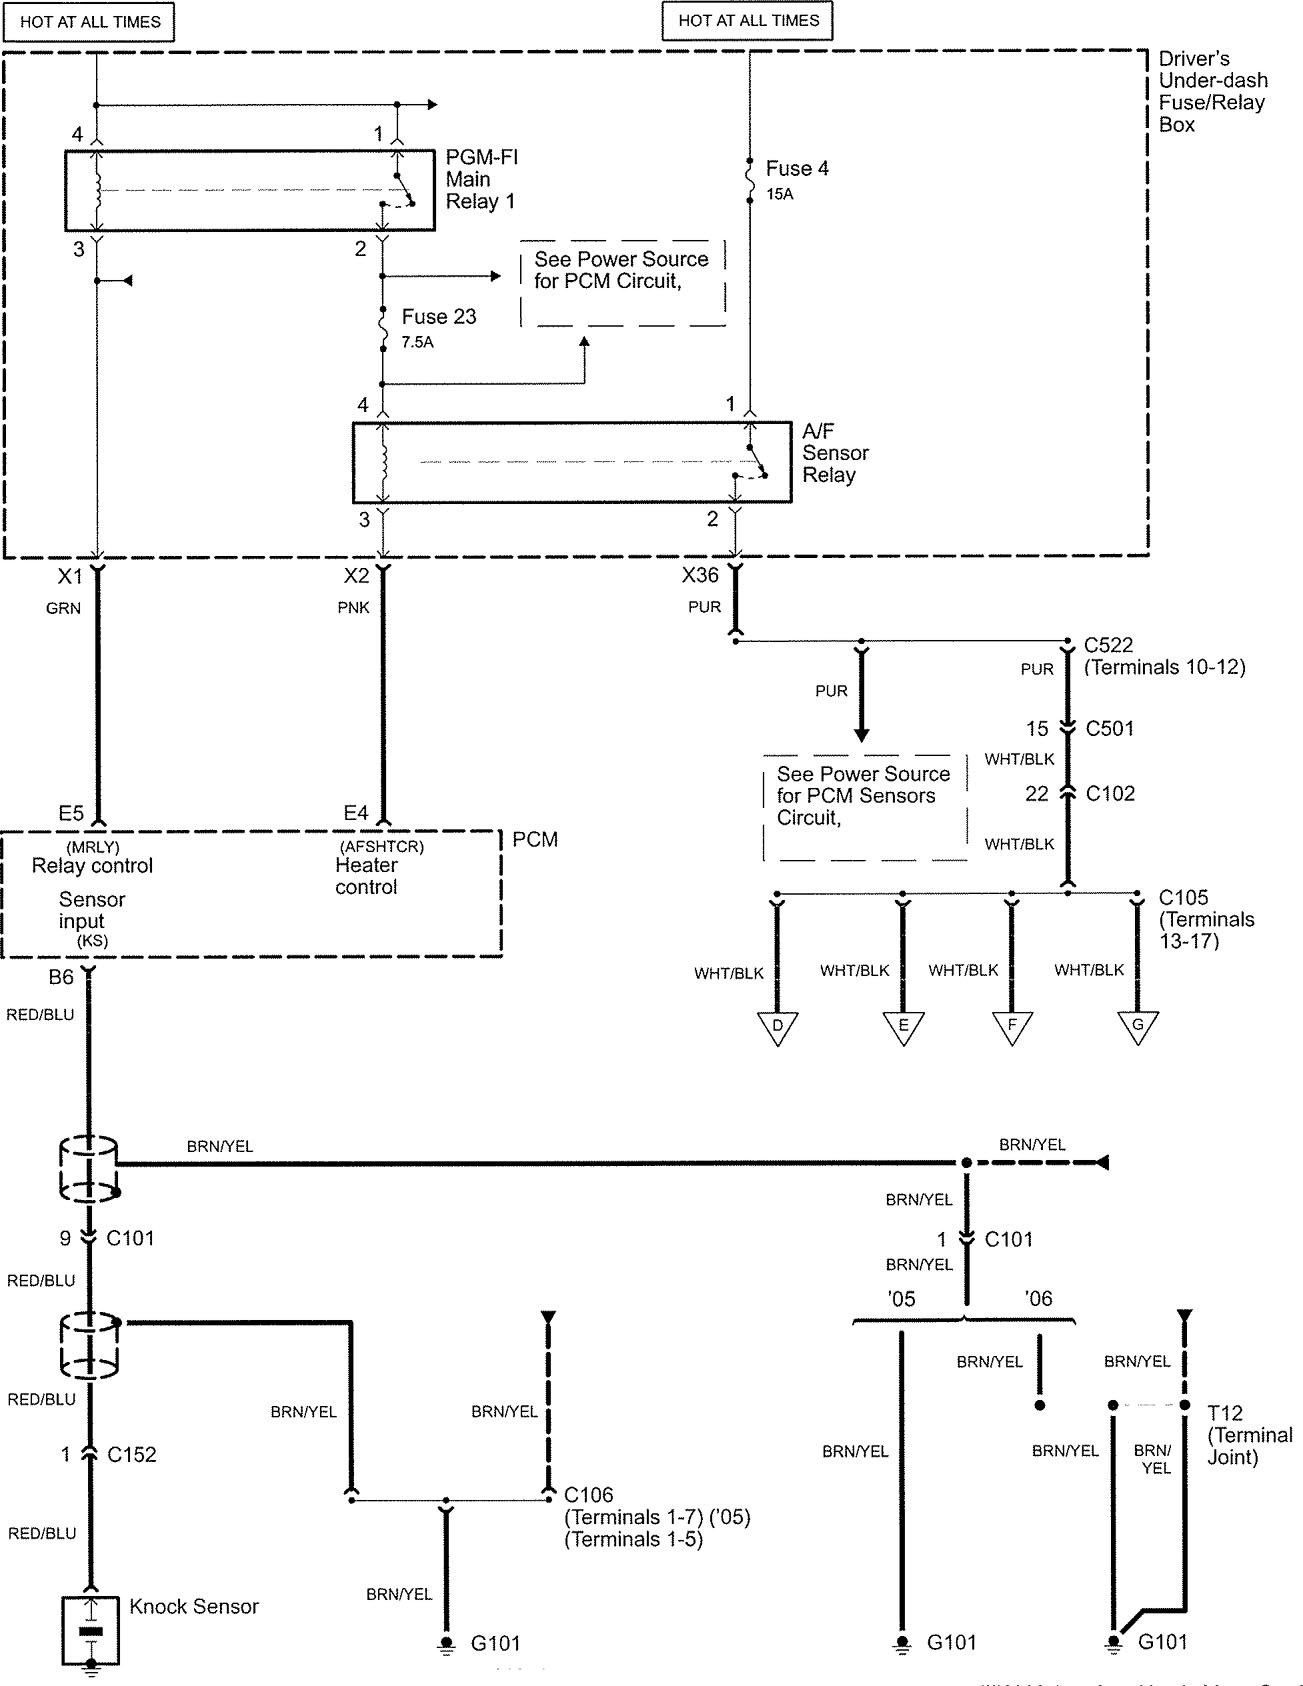 acura rl wiring diagram fuel controls v2 4 2005 cessna 152 wiring diagram wiring diagrams cessna master switch wiring diagram at n-0.co